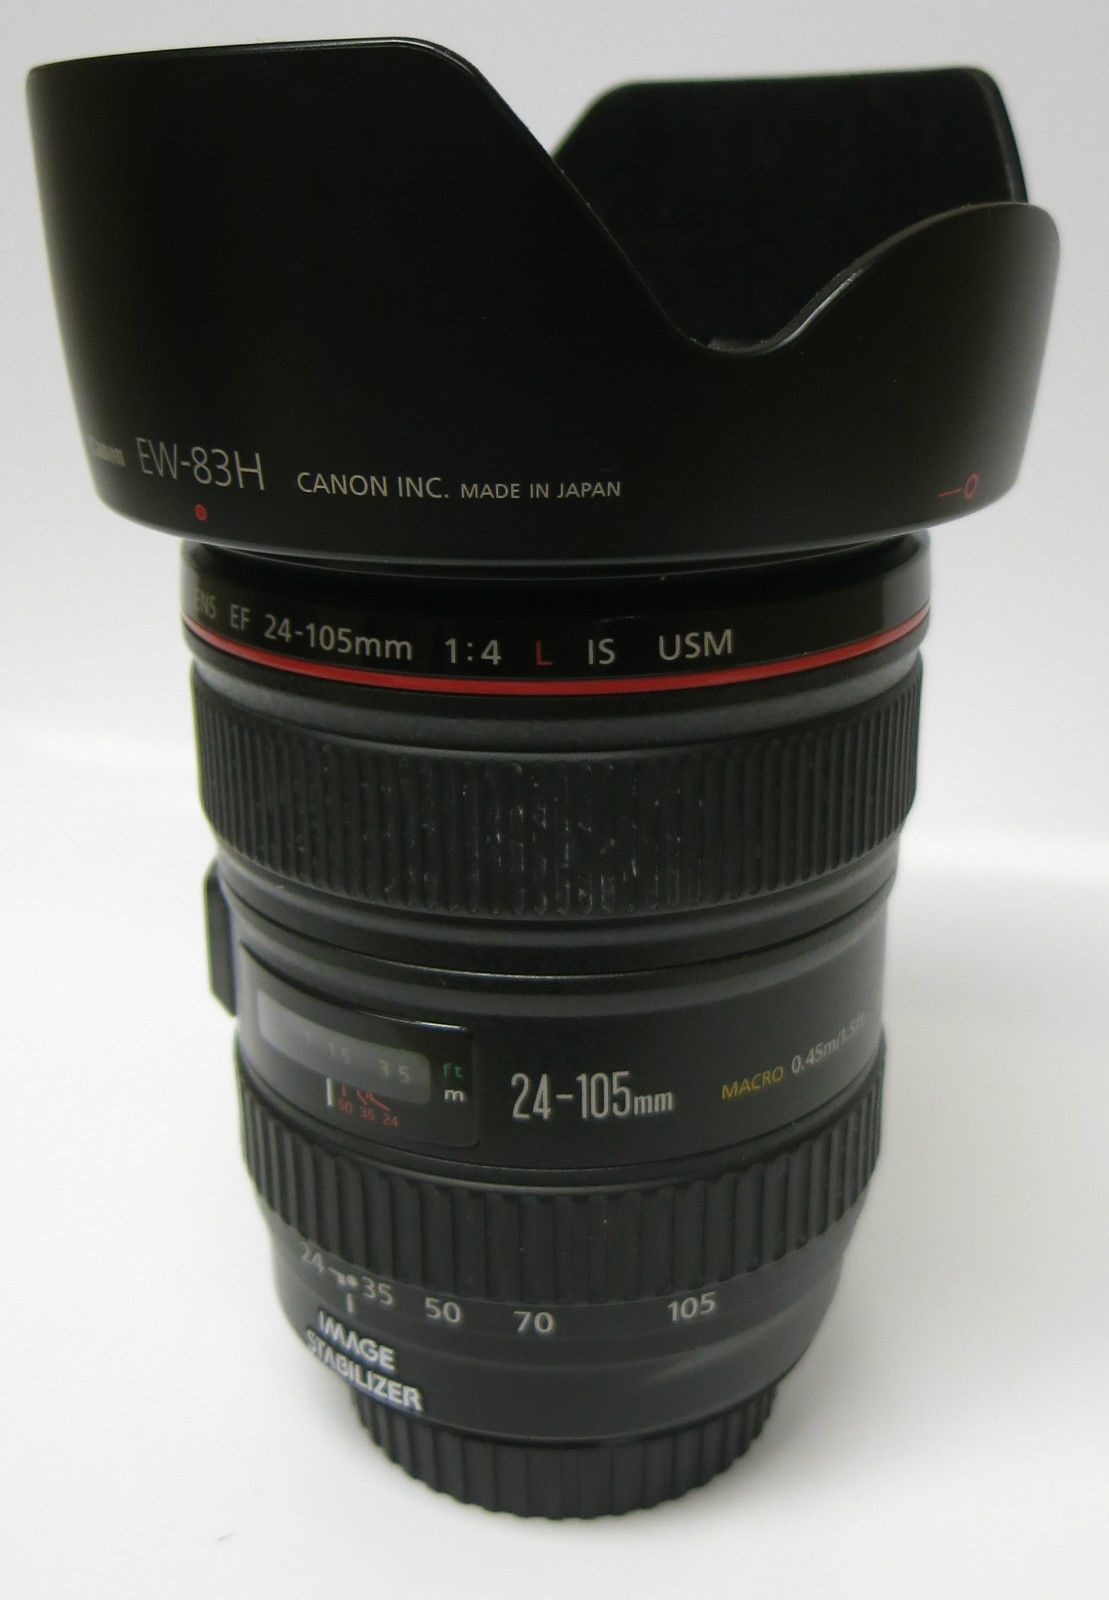 Canon Ef 24 105mm F 4 L Is Usm 1 4 Macro 0 45m 1 5ft Image